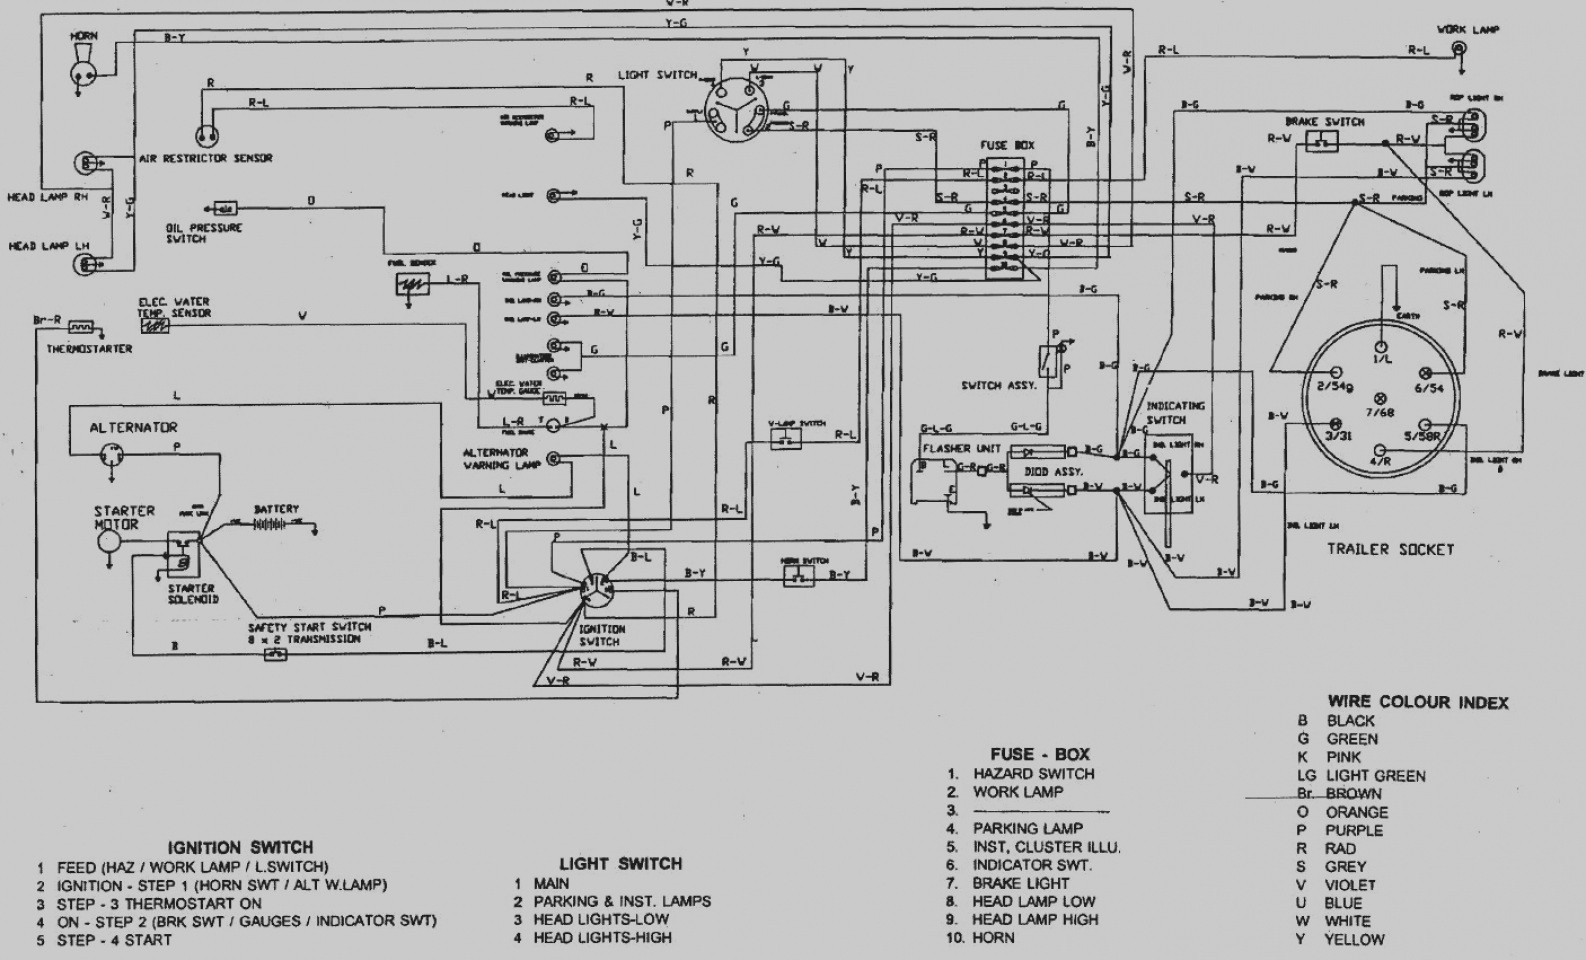 John Deere Lx255 Electrical Schematic Wiring Diagrams Lawn Tractor Diagram L120 U2022 Lx266 Manual